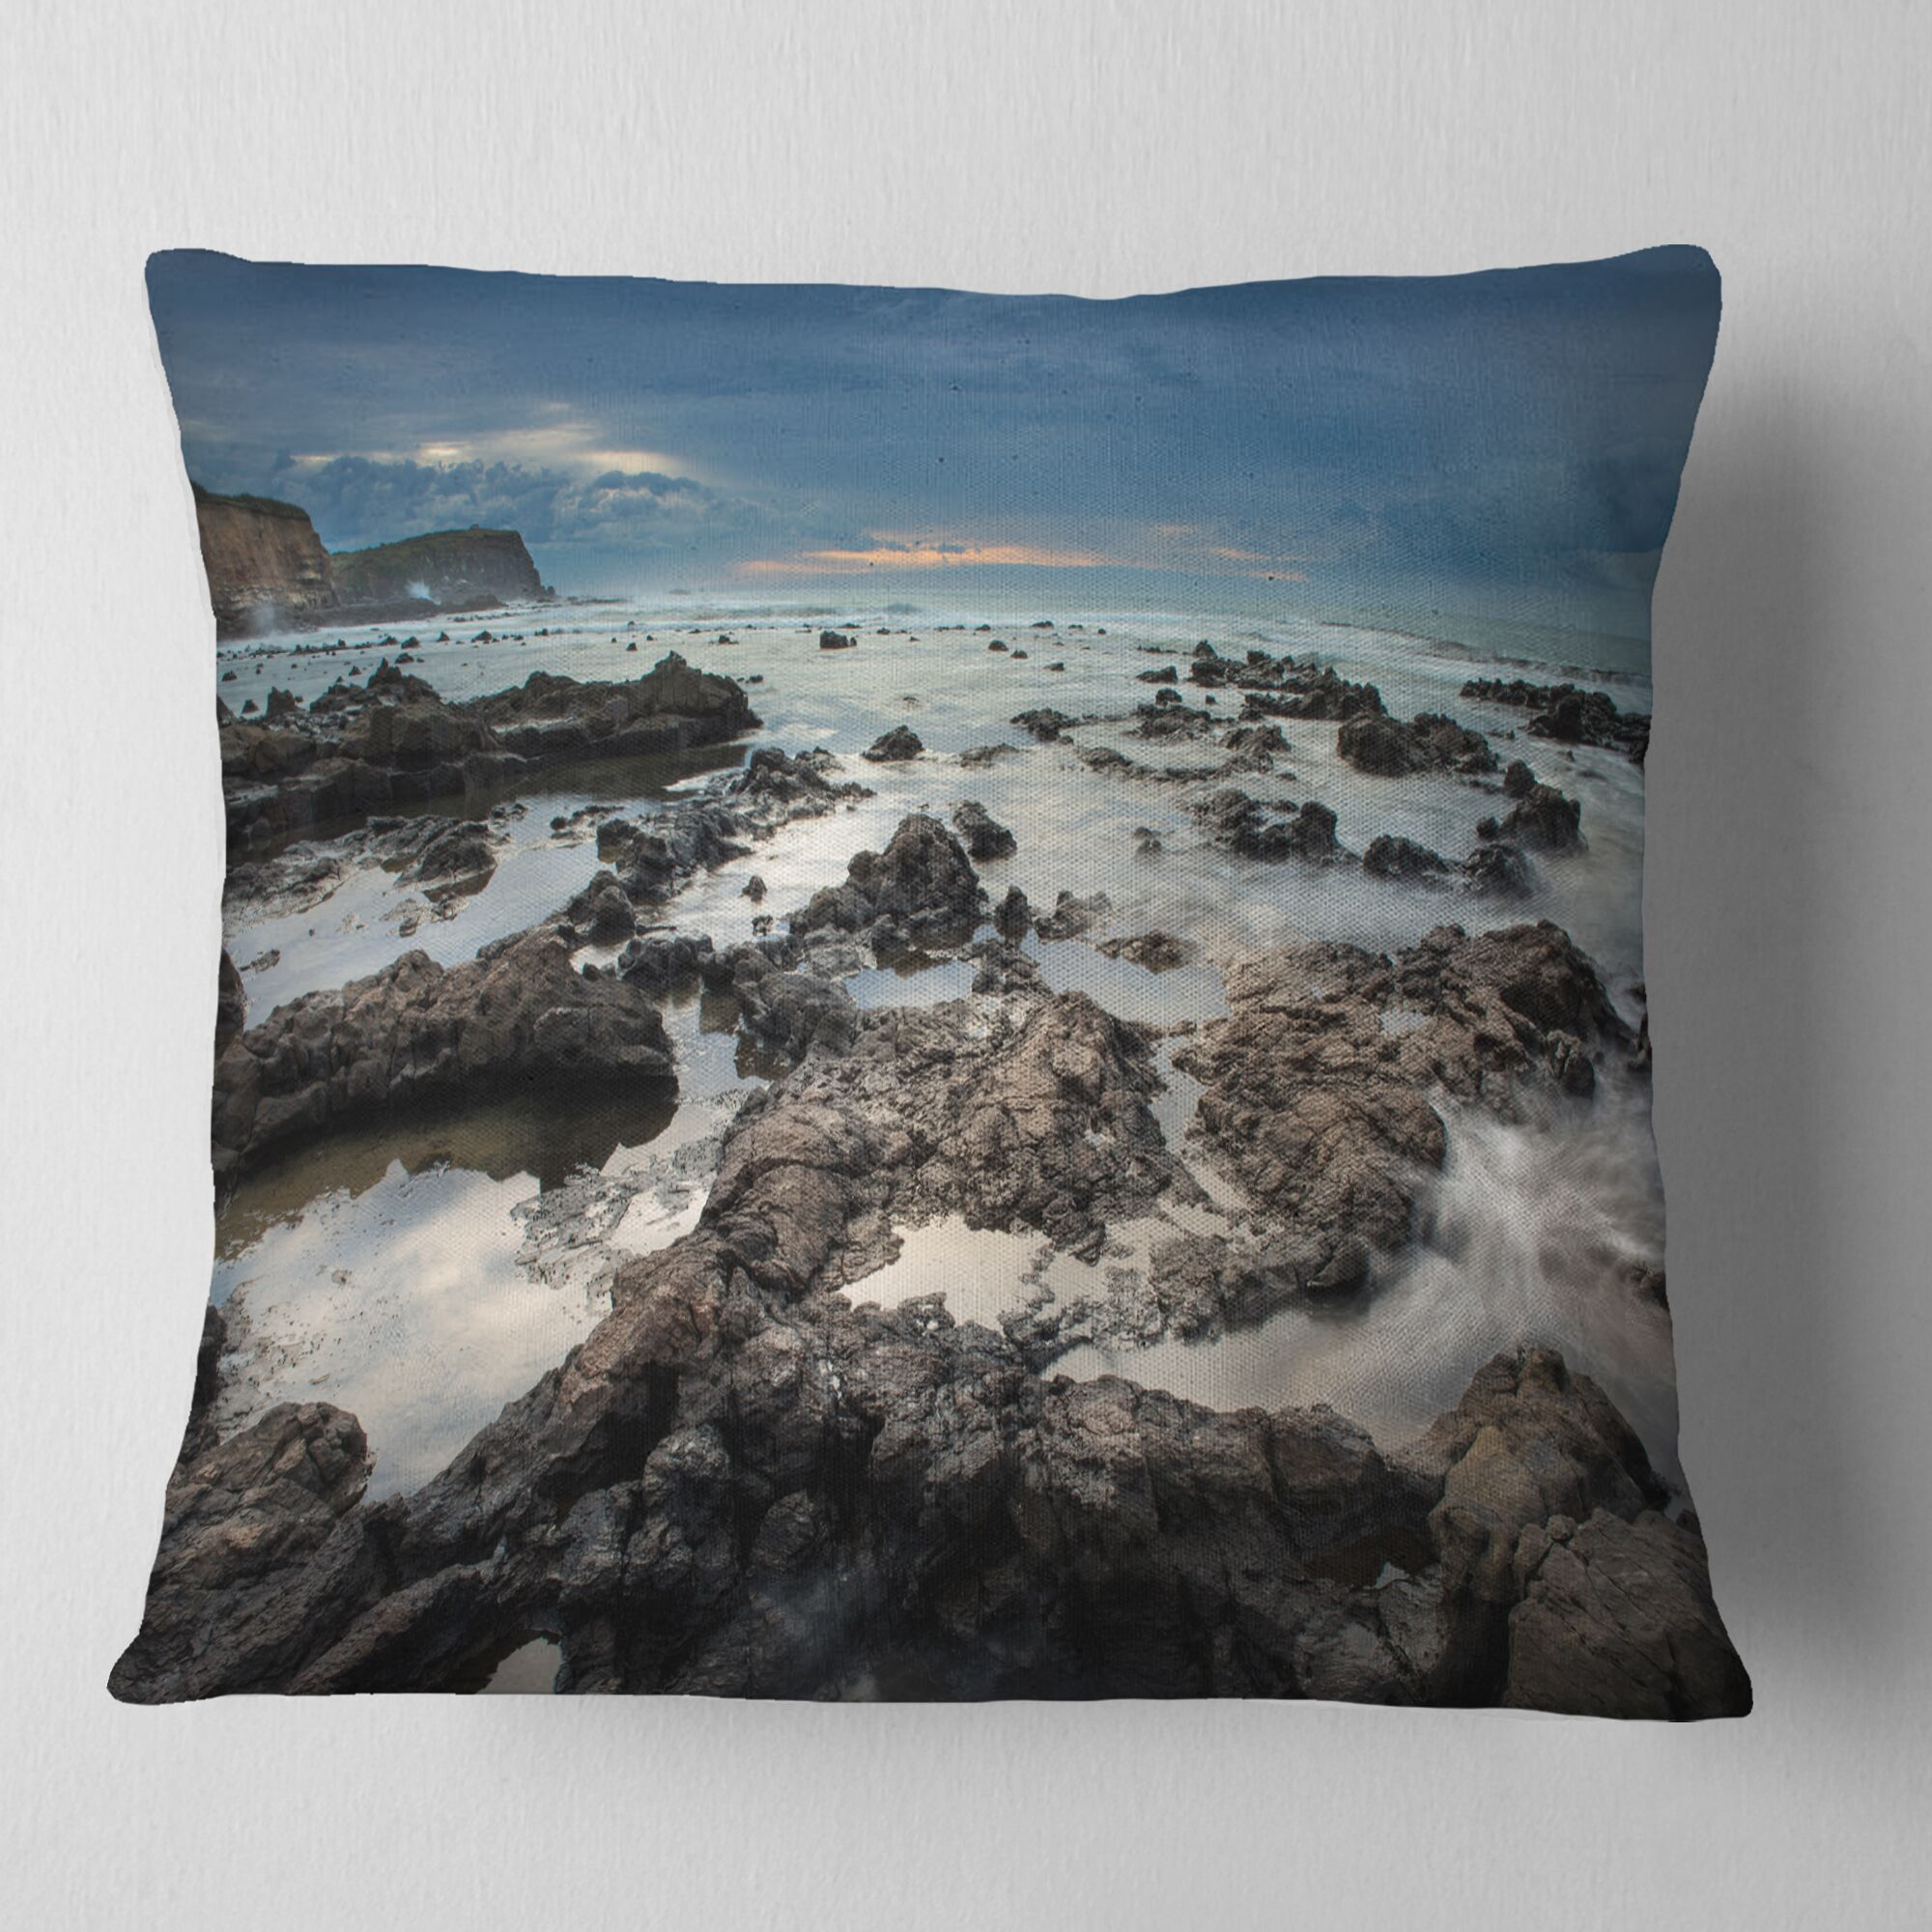 Rocky Seashore with Sky over Pillow Size: 18